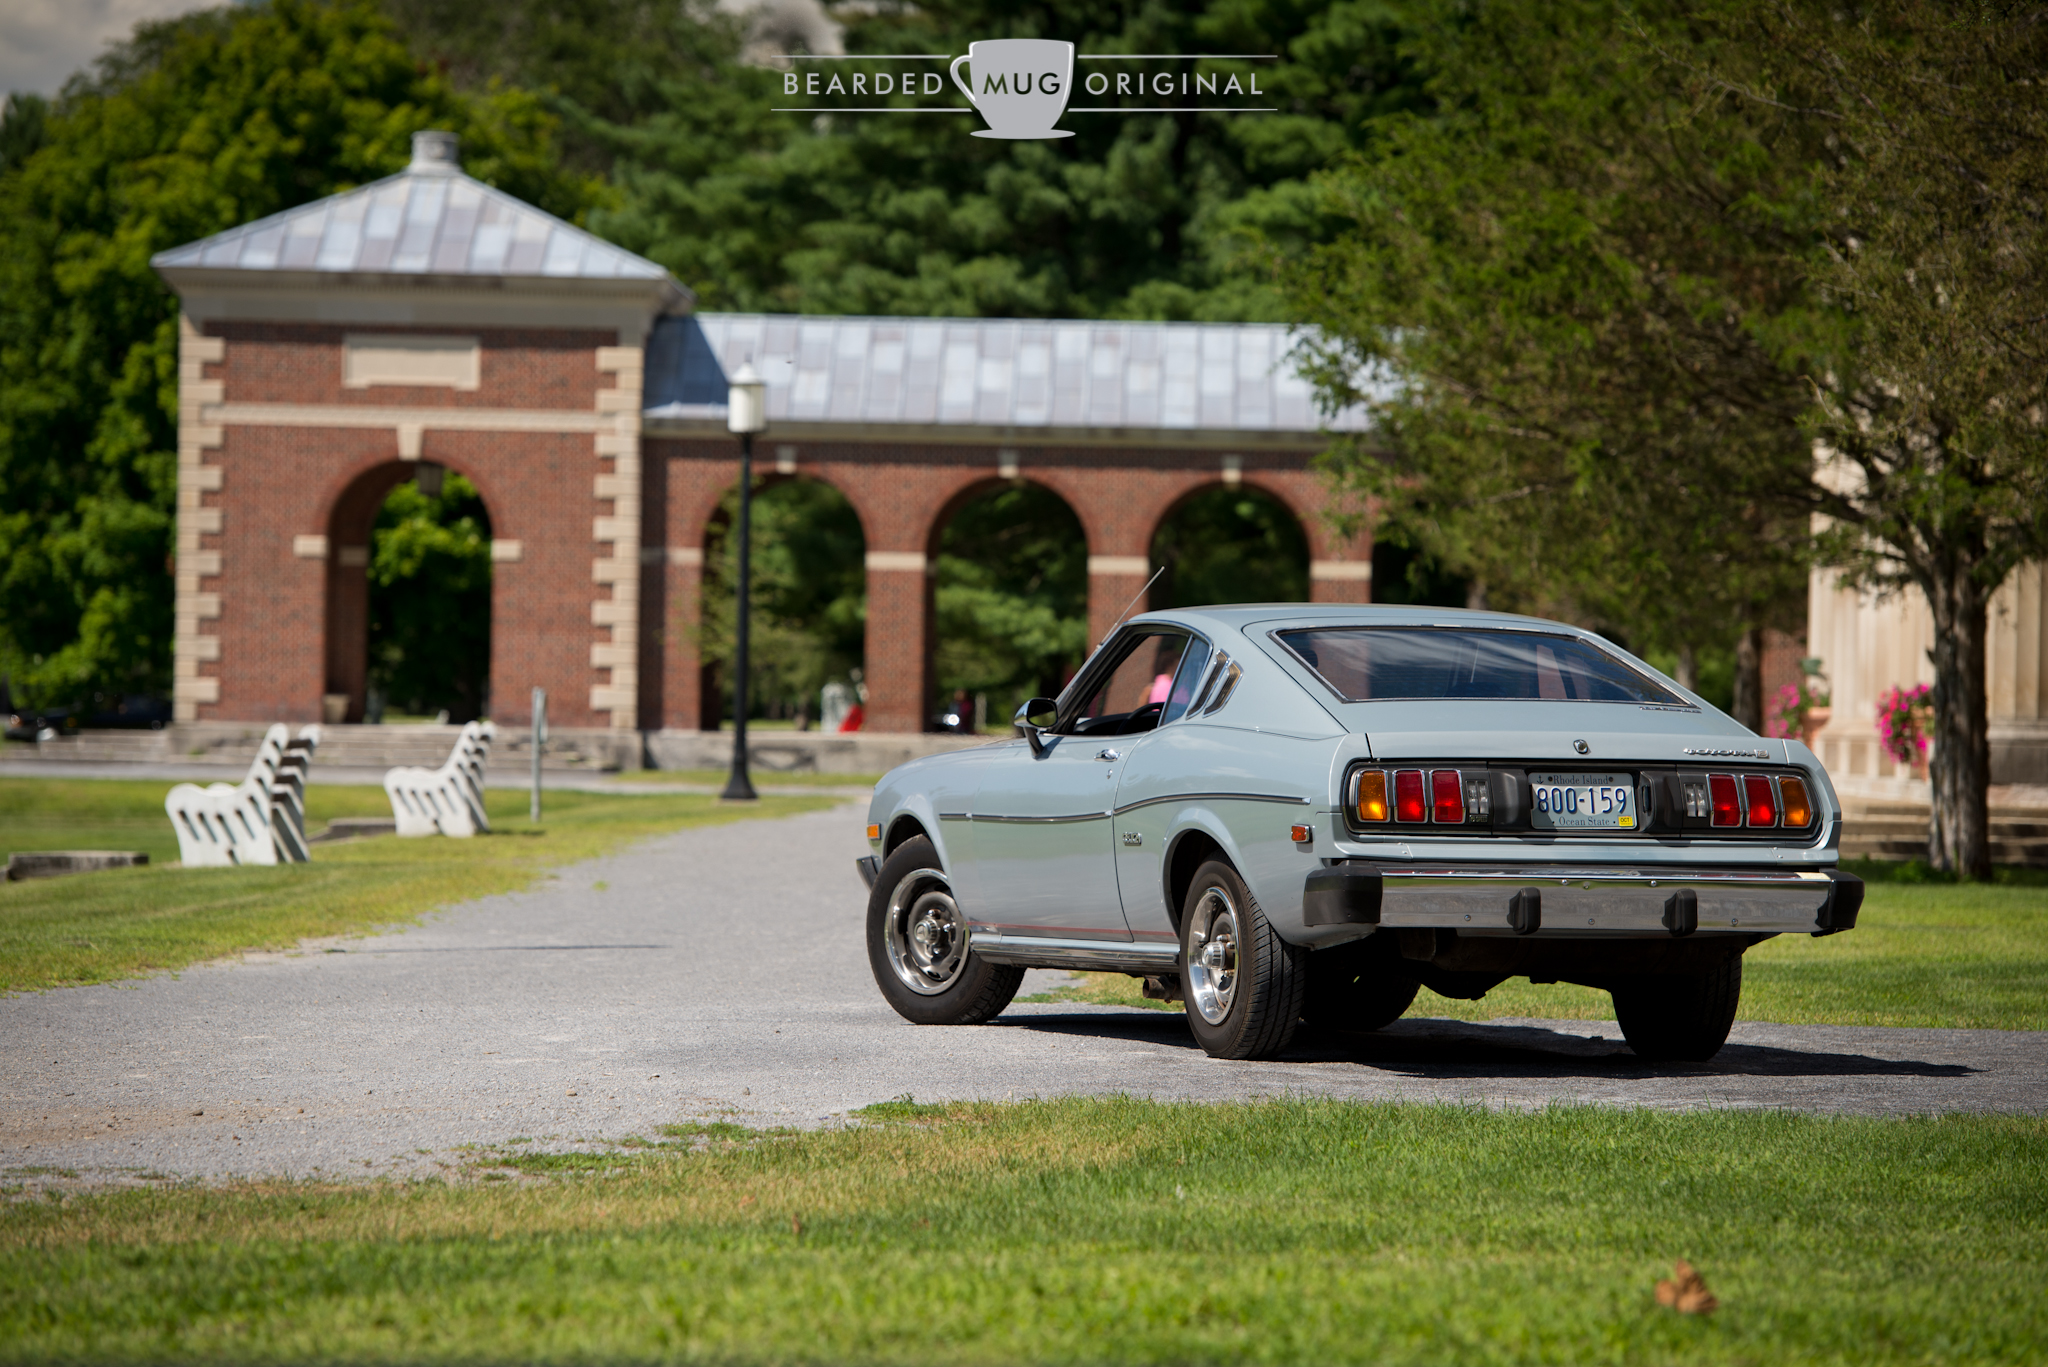 I caught up with Craig, the owner of this 1977 Celica, in order to get some additional shots of this JDM survivor.